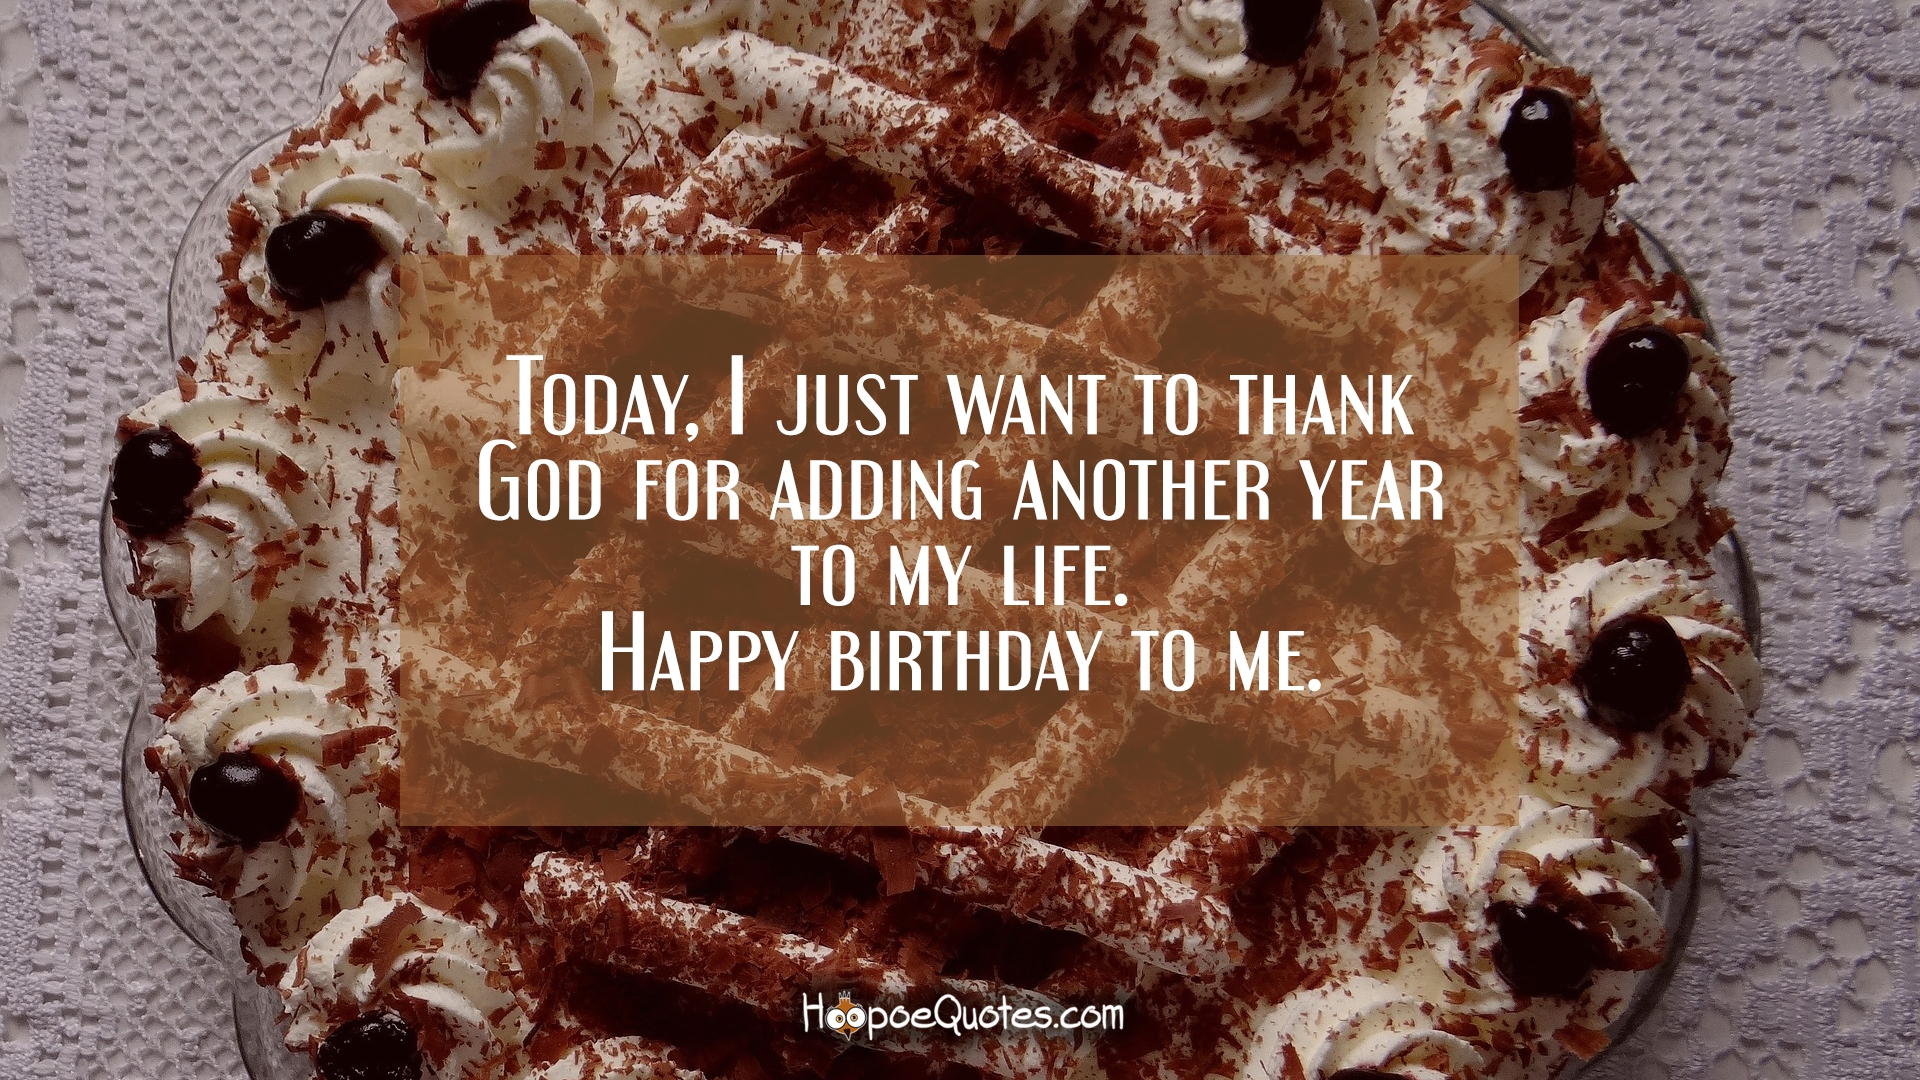 Today I Just Want To Thank God For Adding Another Year To My Life